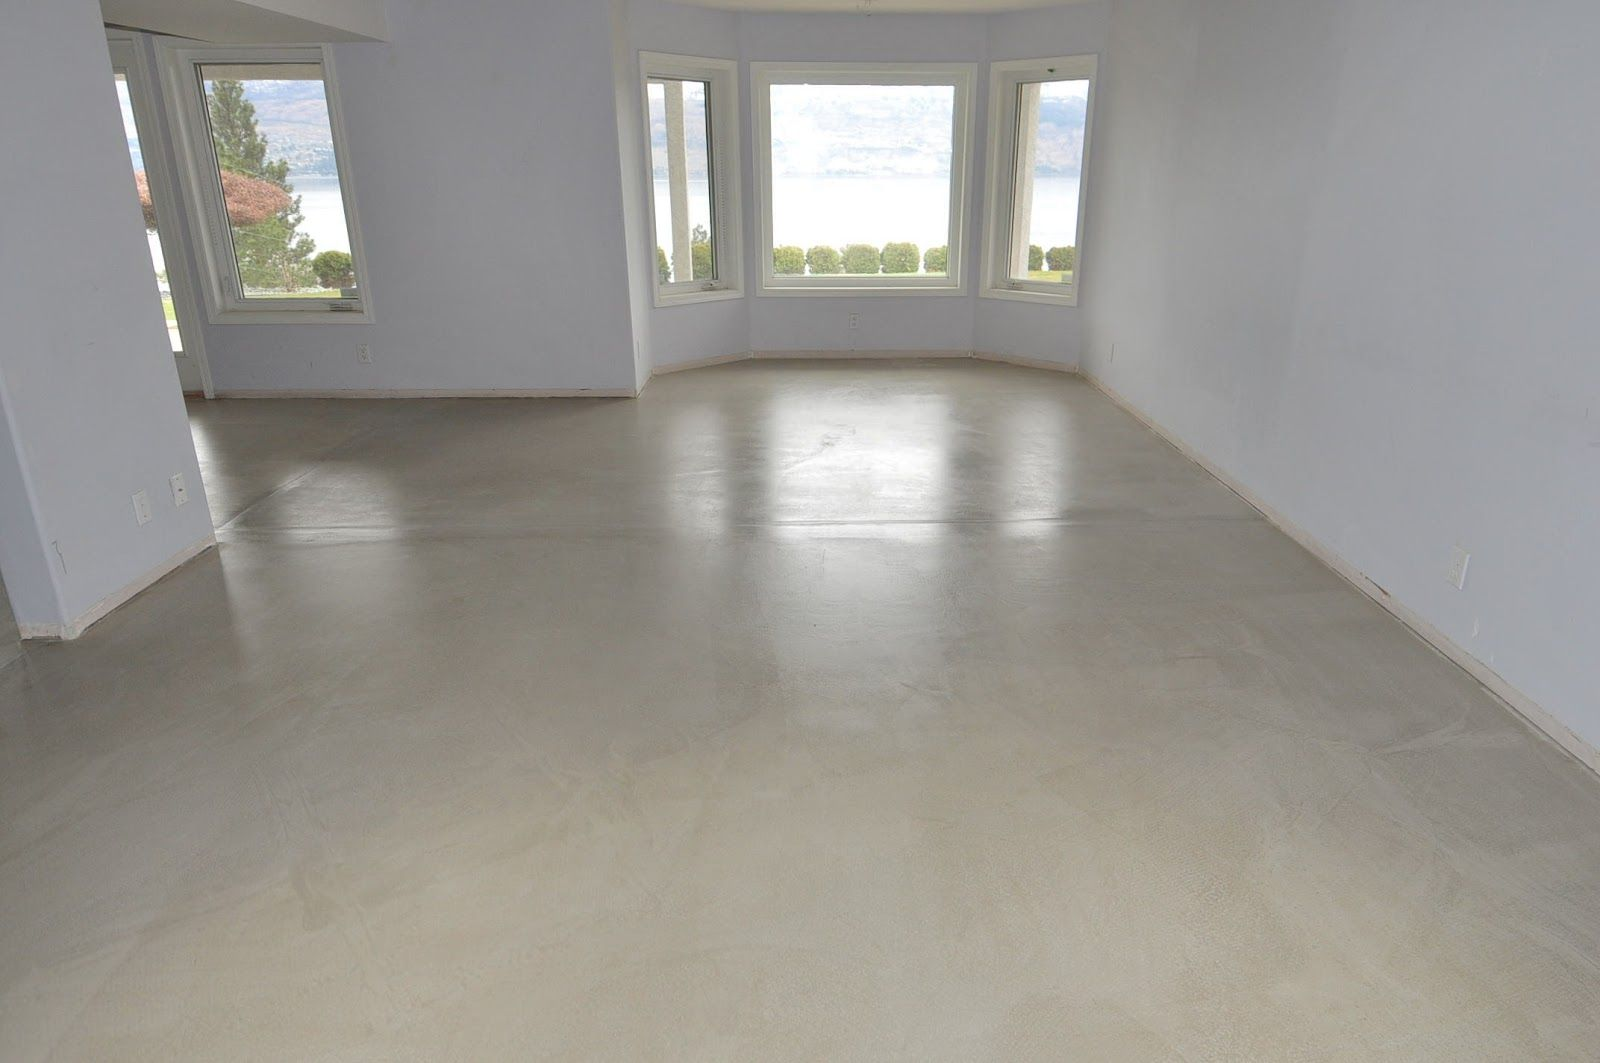 Crete stone flooring f l o o r s pinterest crete concrete ideas cream modern concrete floor paint that can be combined with white wall can add the modern touch inside modern house design ideas with minimalist dailygadgetfo Images